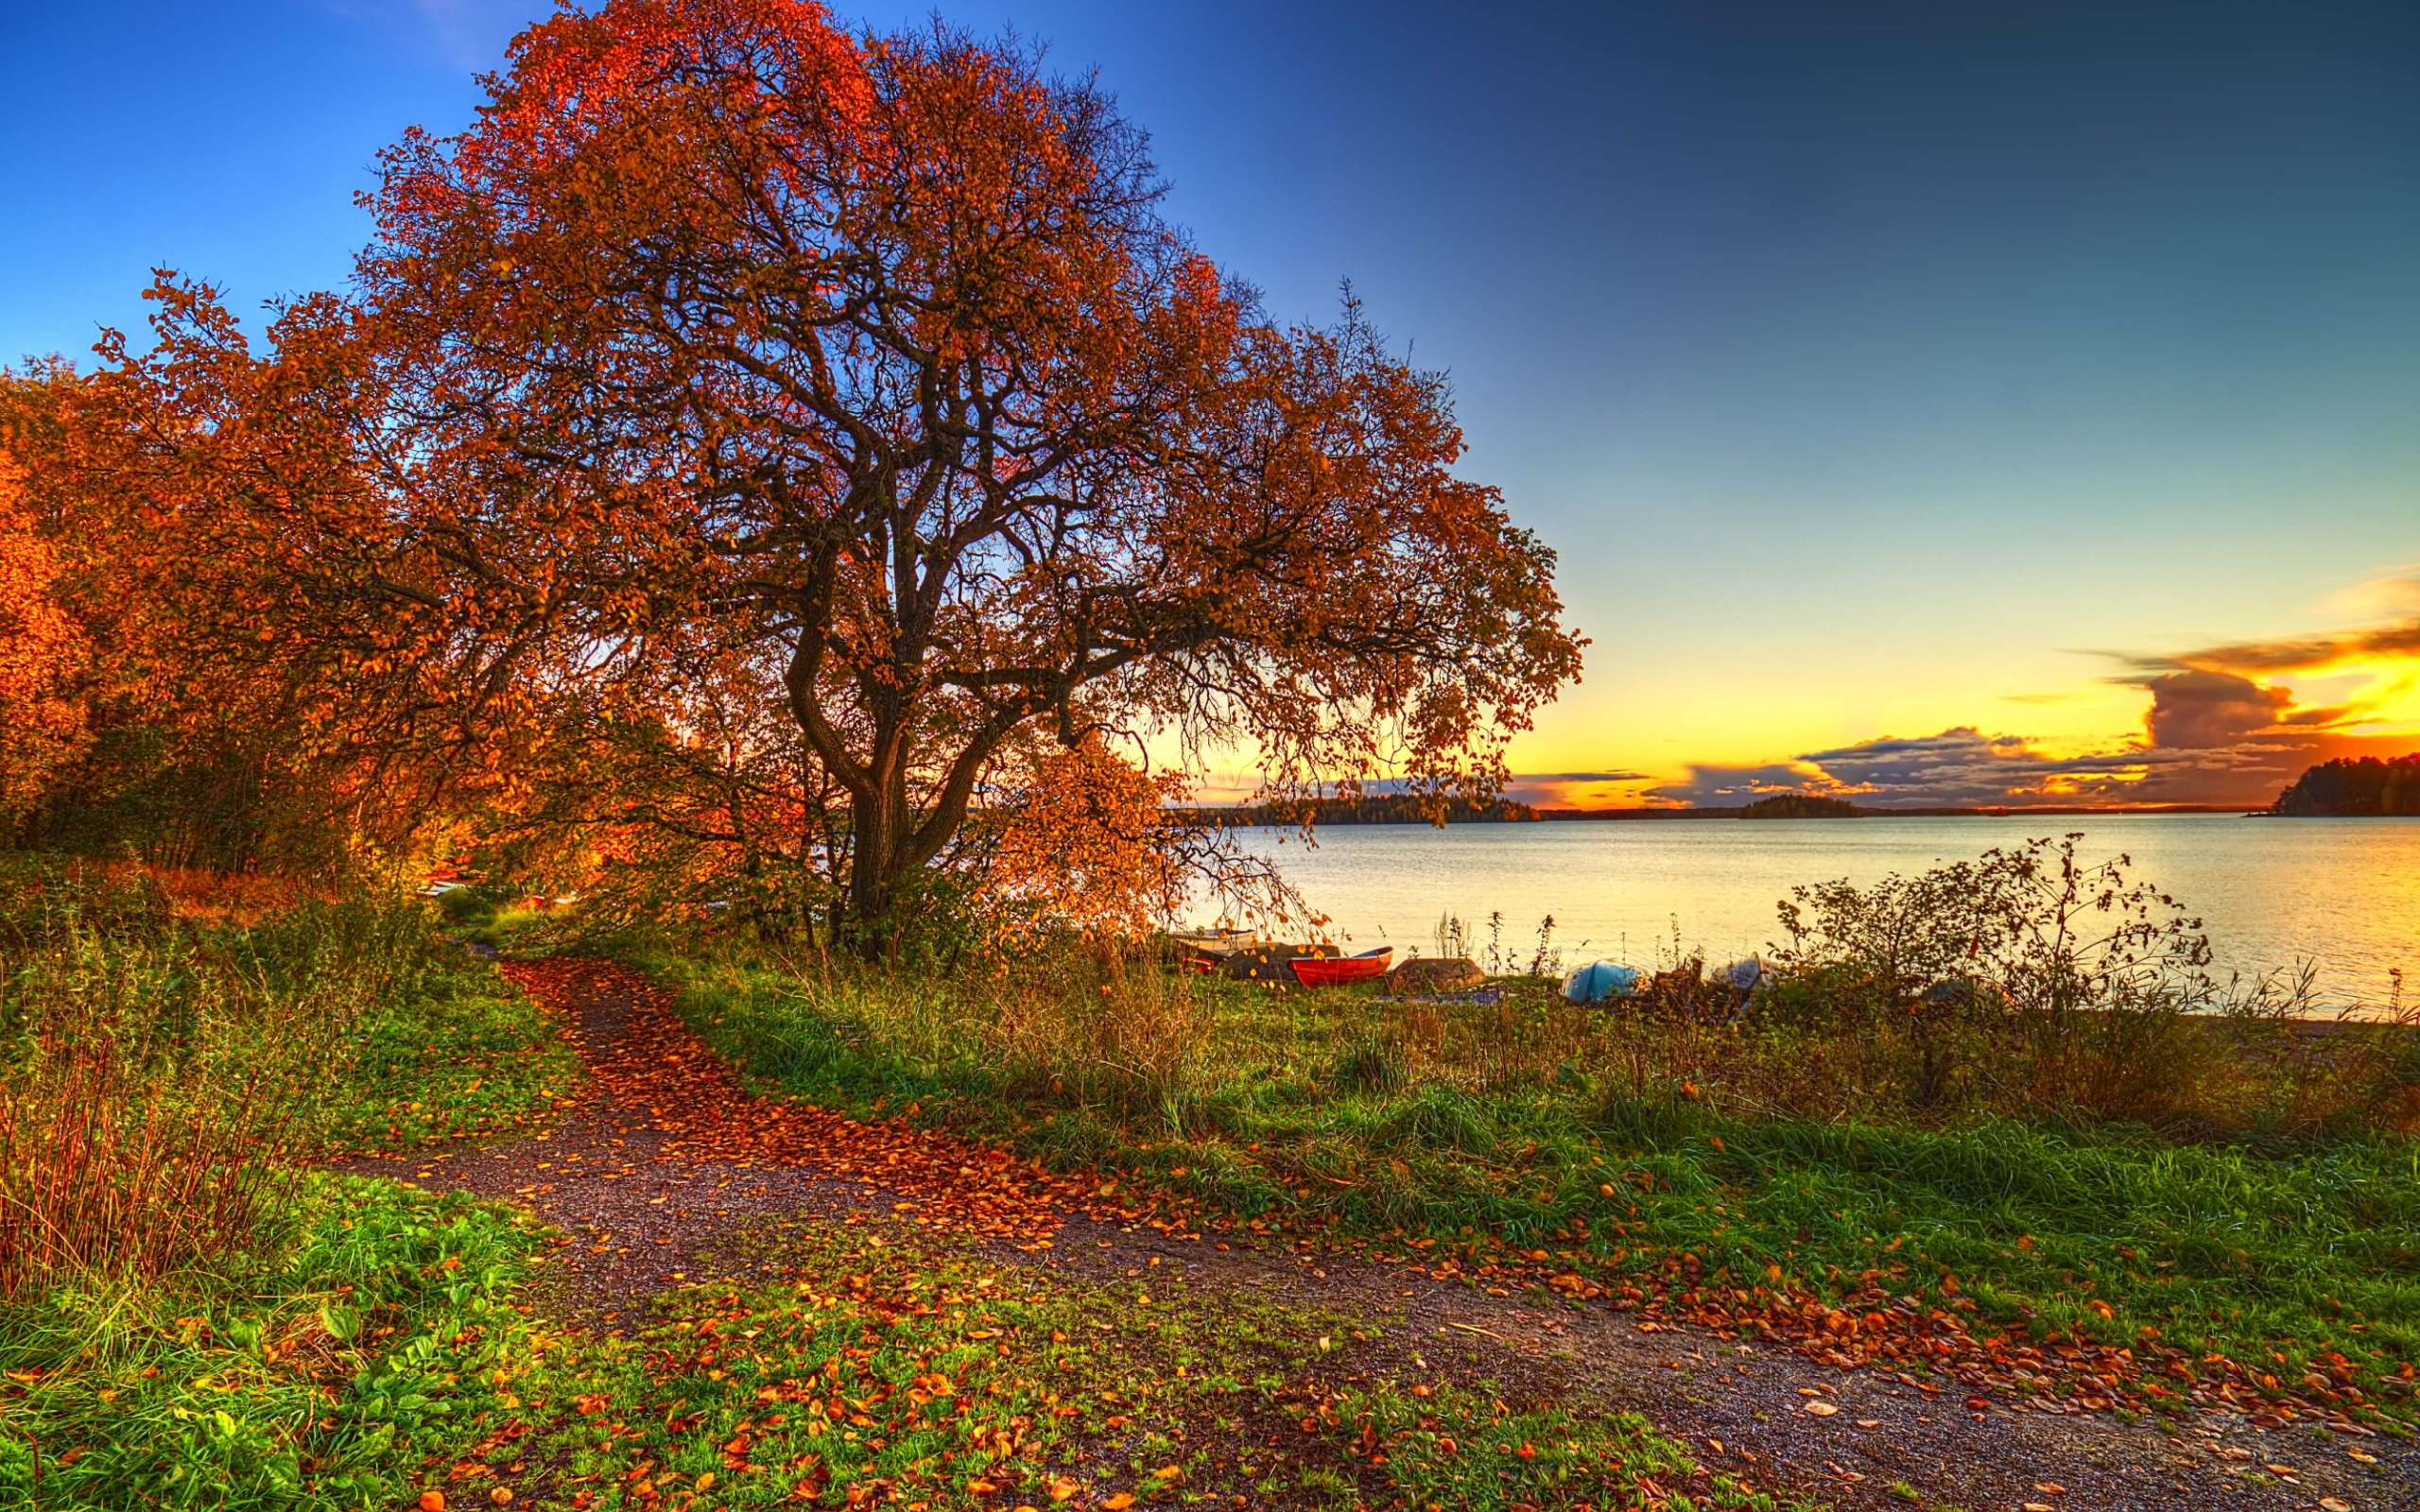 30406 download wallpaper Landscape, Trees, Autumn screensavers and pictures for free